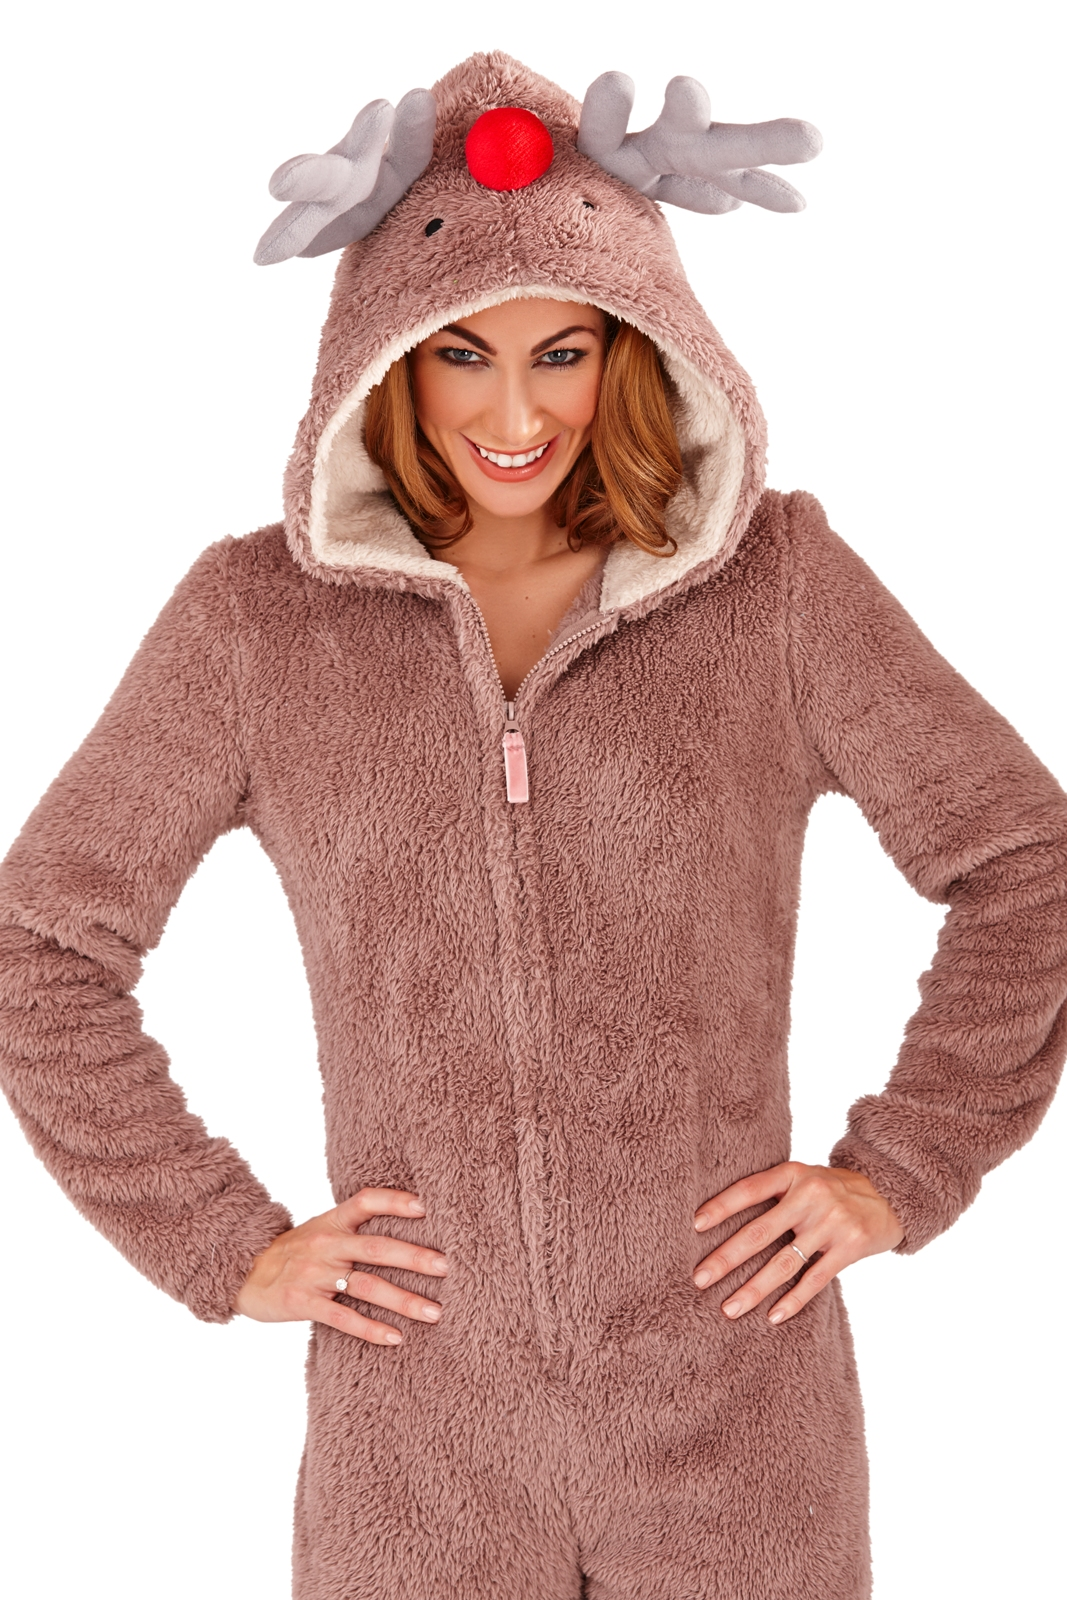 e215fa52c687e Womens 3d Reindeer Onesie Hooded Dress up All in One Pyjamas ...